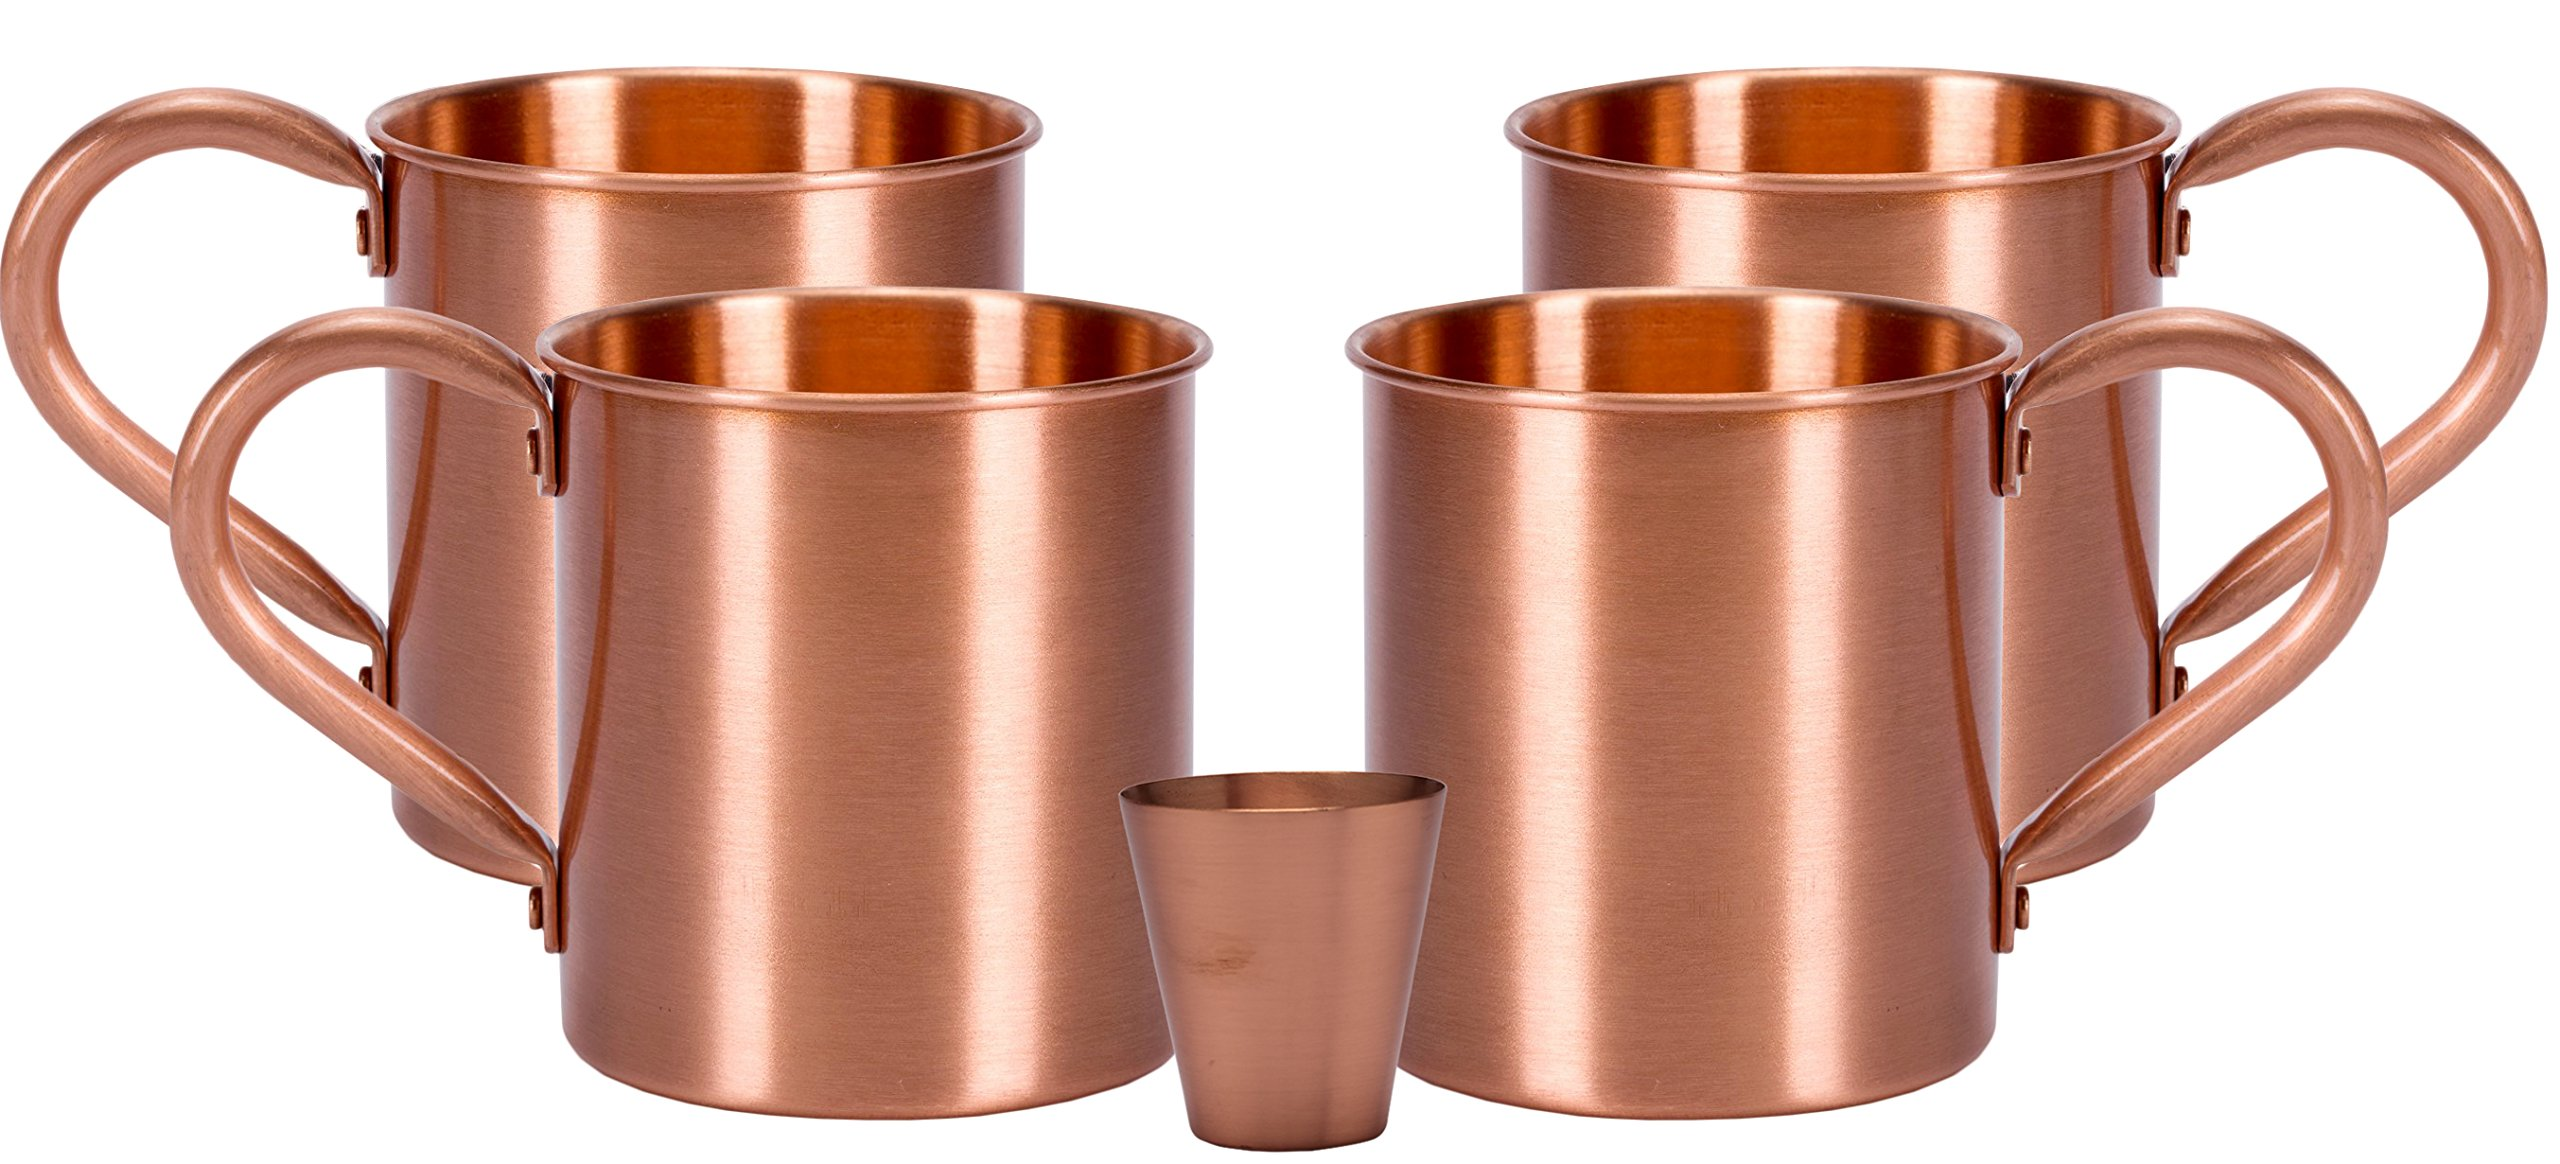 Melange 20 Oz Copper Classic Mug for Moscow Mules, Set of 4 with One Shot Glass - Heavy Gauge - No Lining - Includes Free Recipe Card